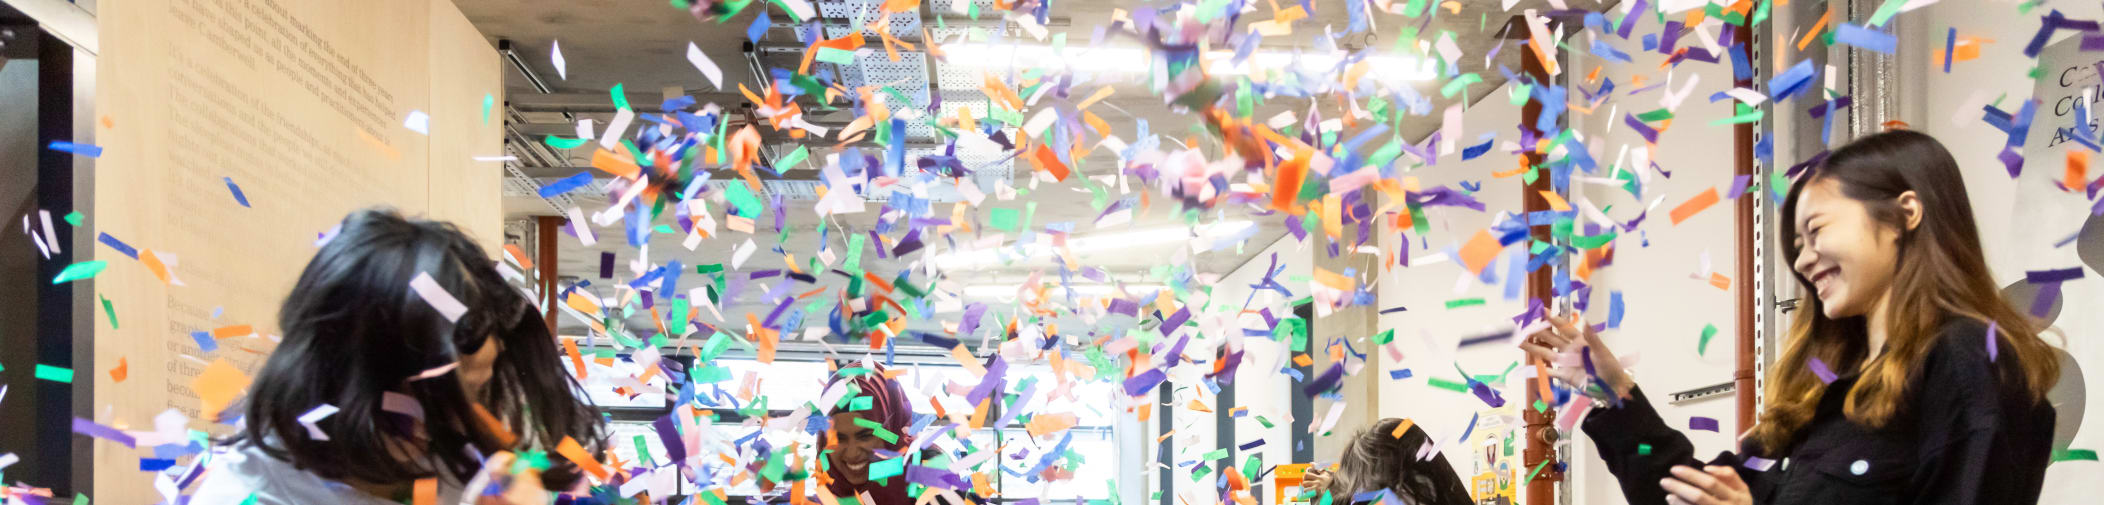 Degree show attendees throwing confetti in the air